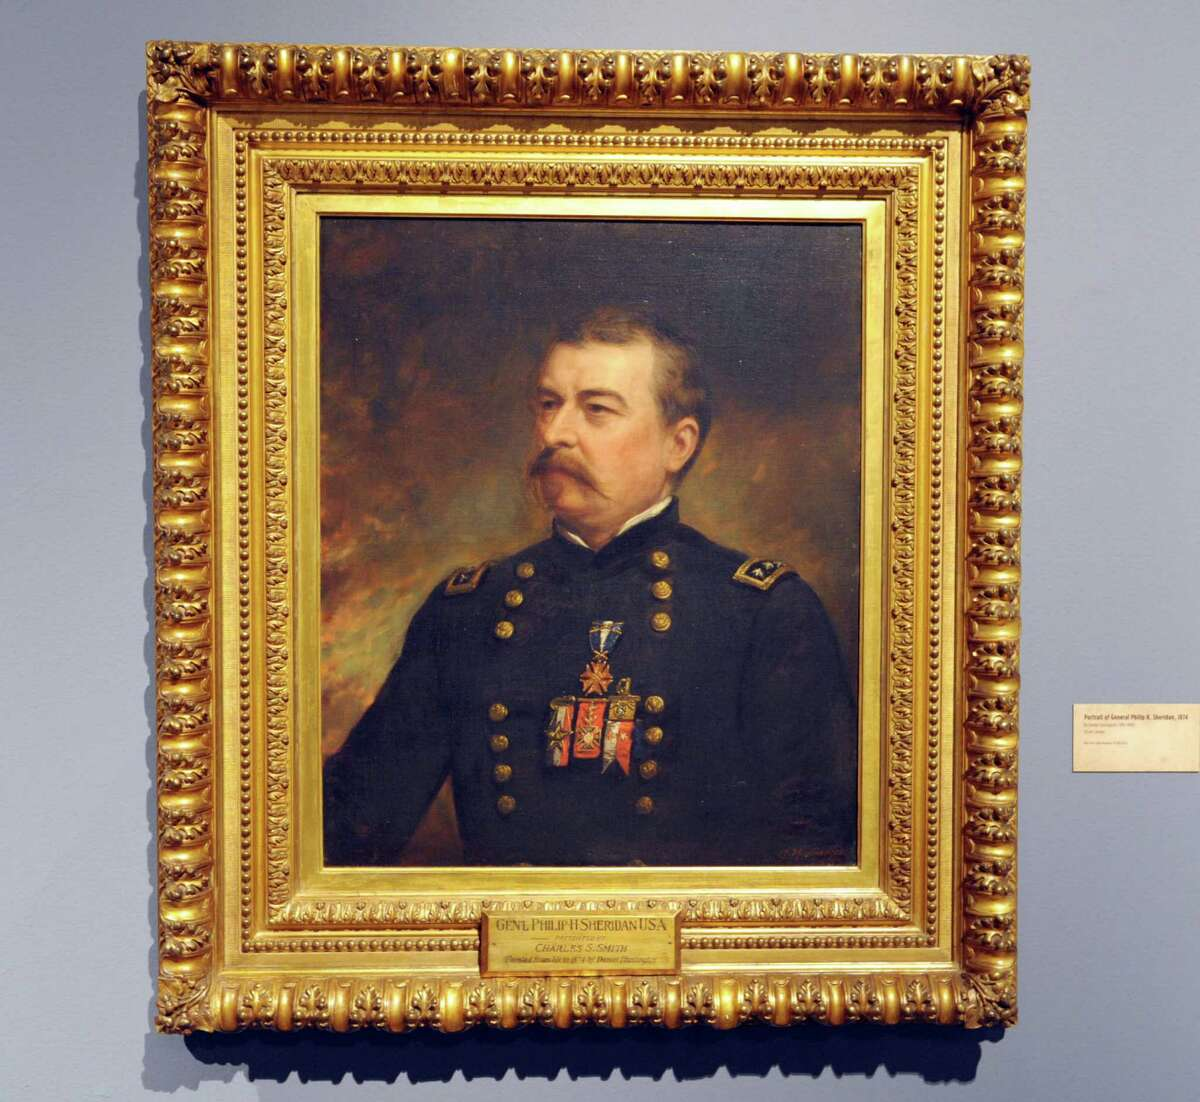 An oil on canvas portrait of General Philip Sheridan seen here at the New York State Museum in the new Civil War exhibit on Wednesday, Sept. 19, 2012 in Albany, NY. The exhibit is entitled